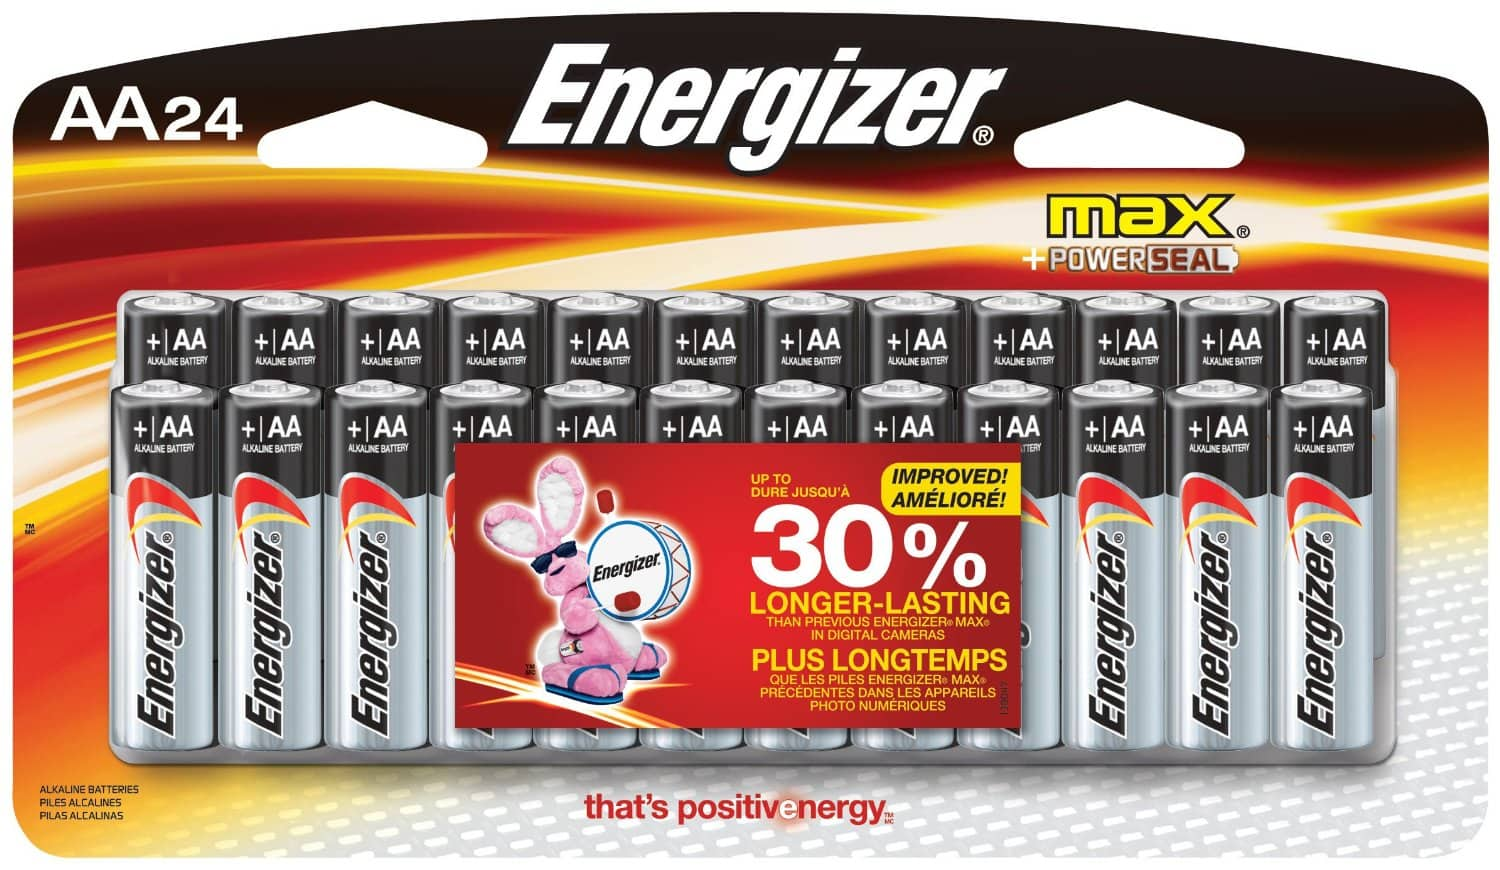 Amazon Prime Deal - 24 Pack Energizer Max AA Batteries $6.92